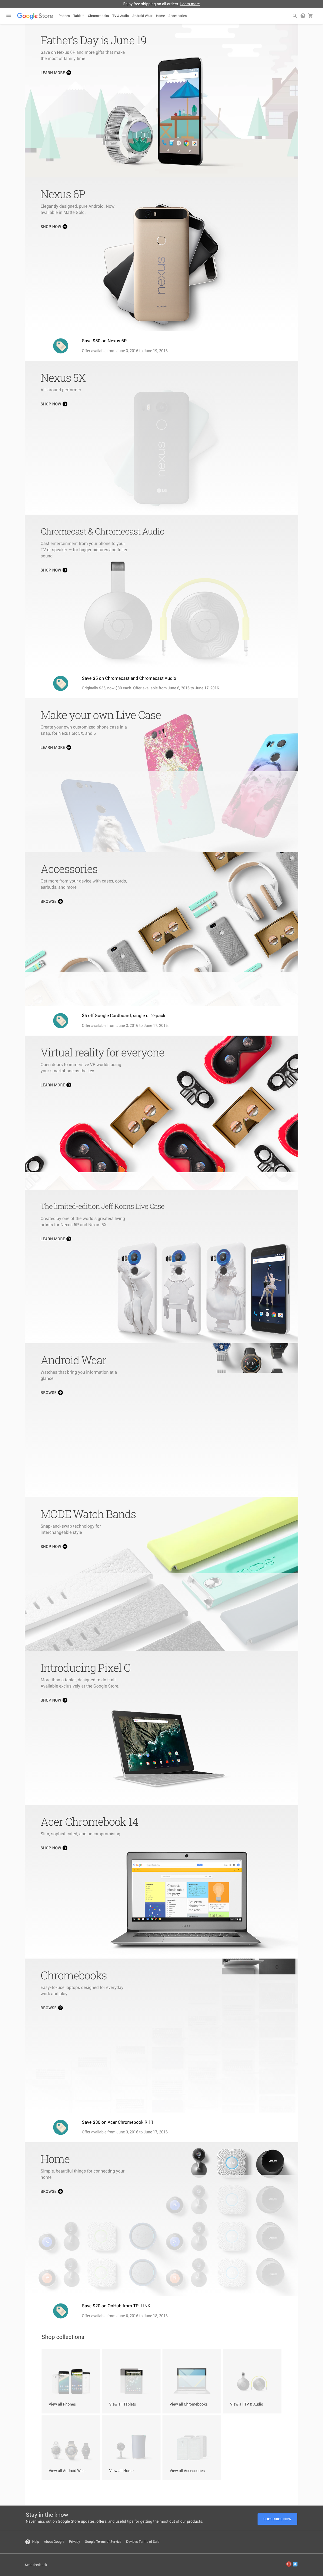 Google Store - Home page - Father's Day